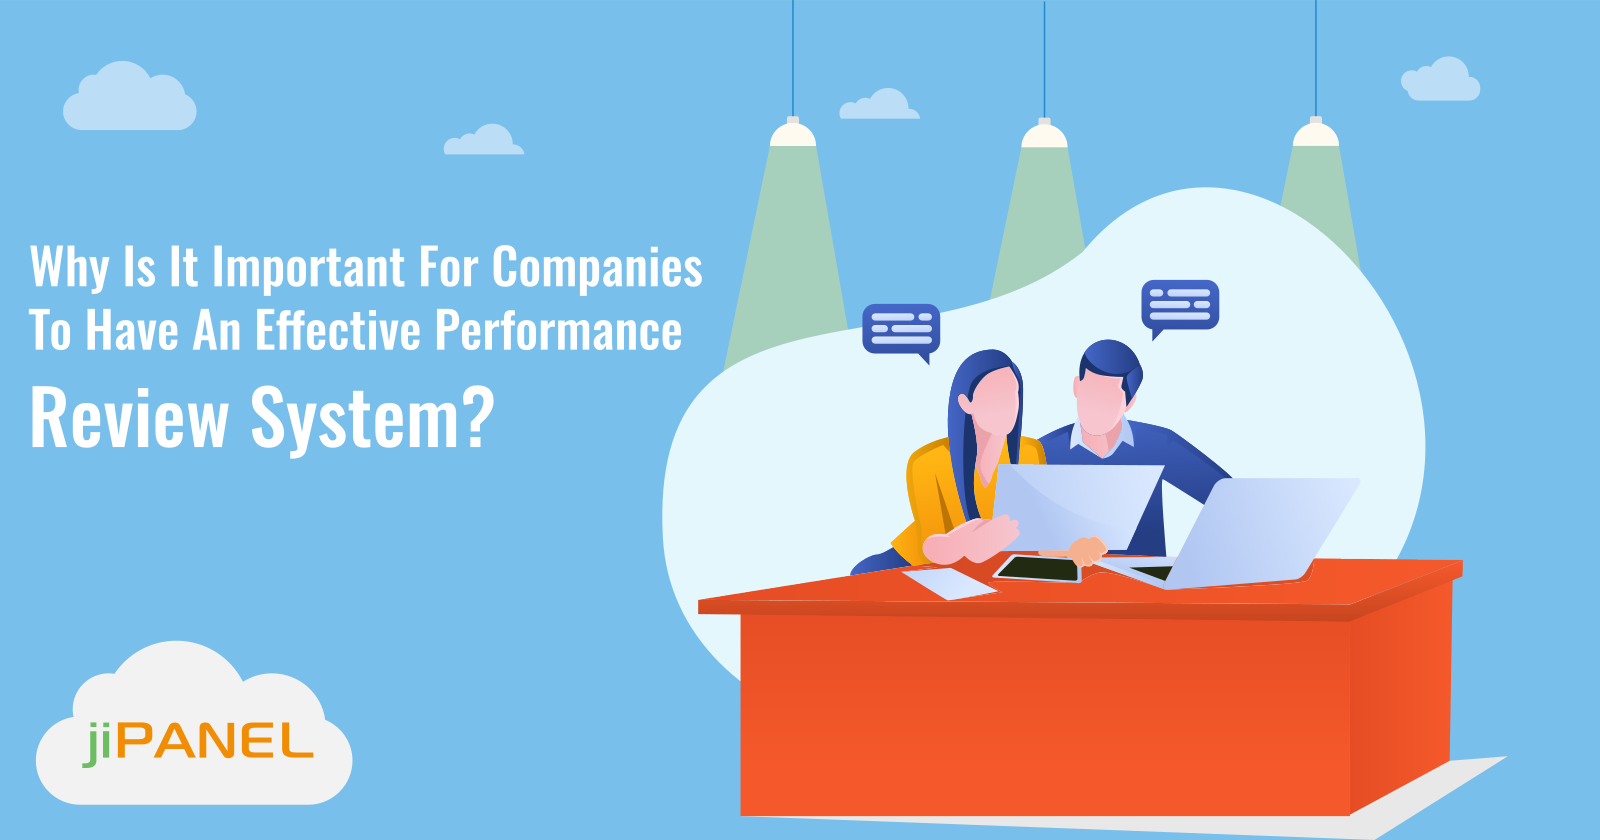 Why Is It Important For Companies To Have An Effective Performance Review System?